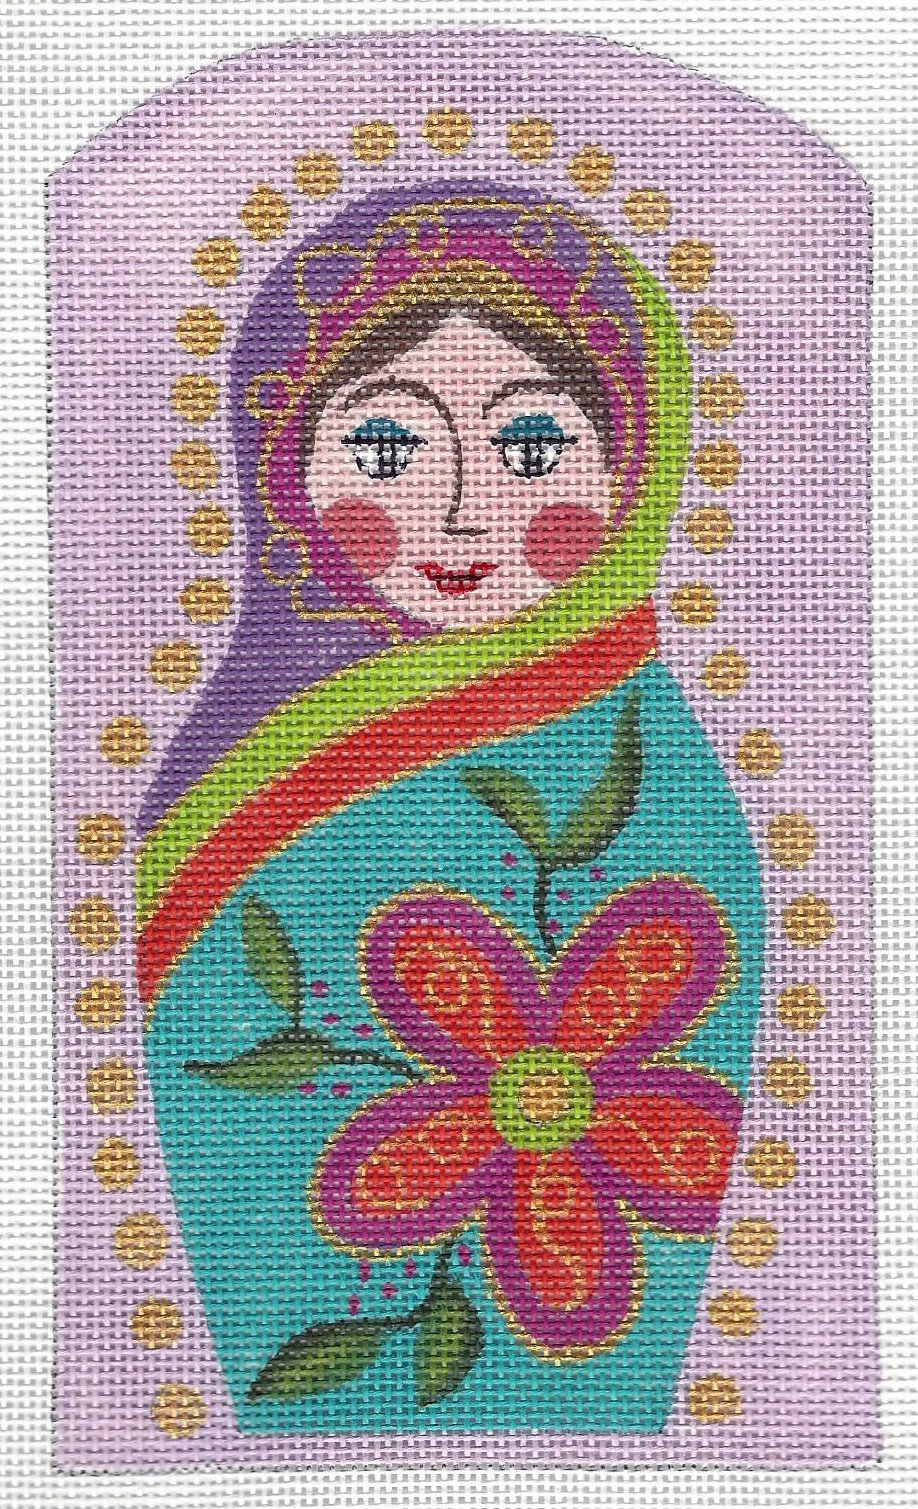 Russian Doll, Large